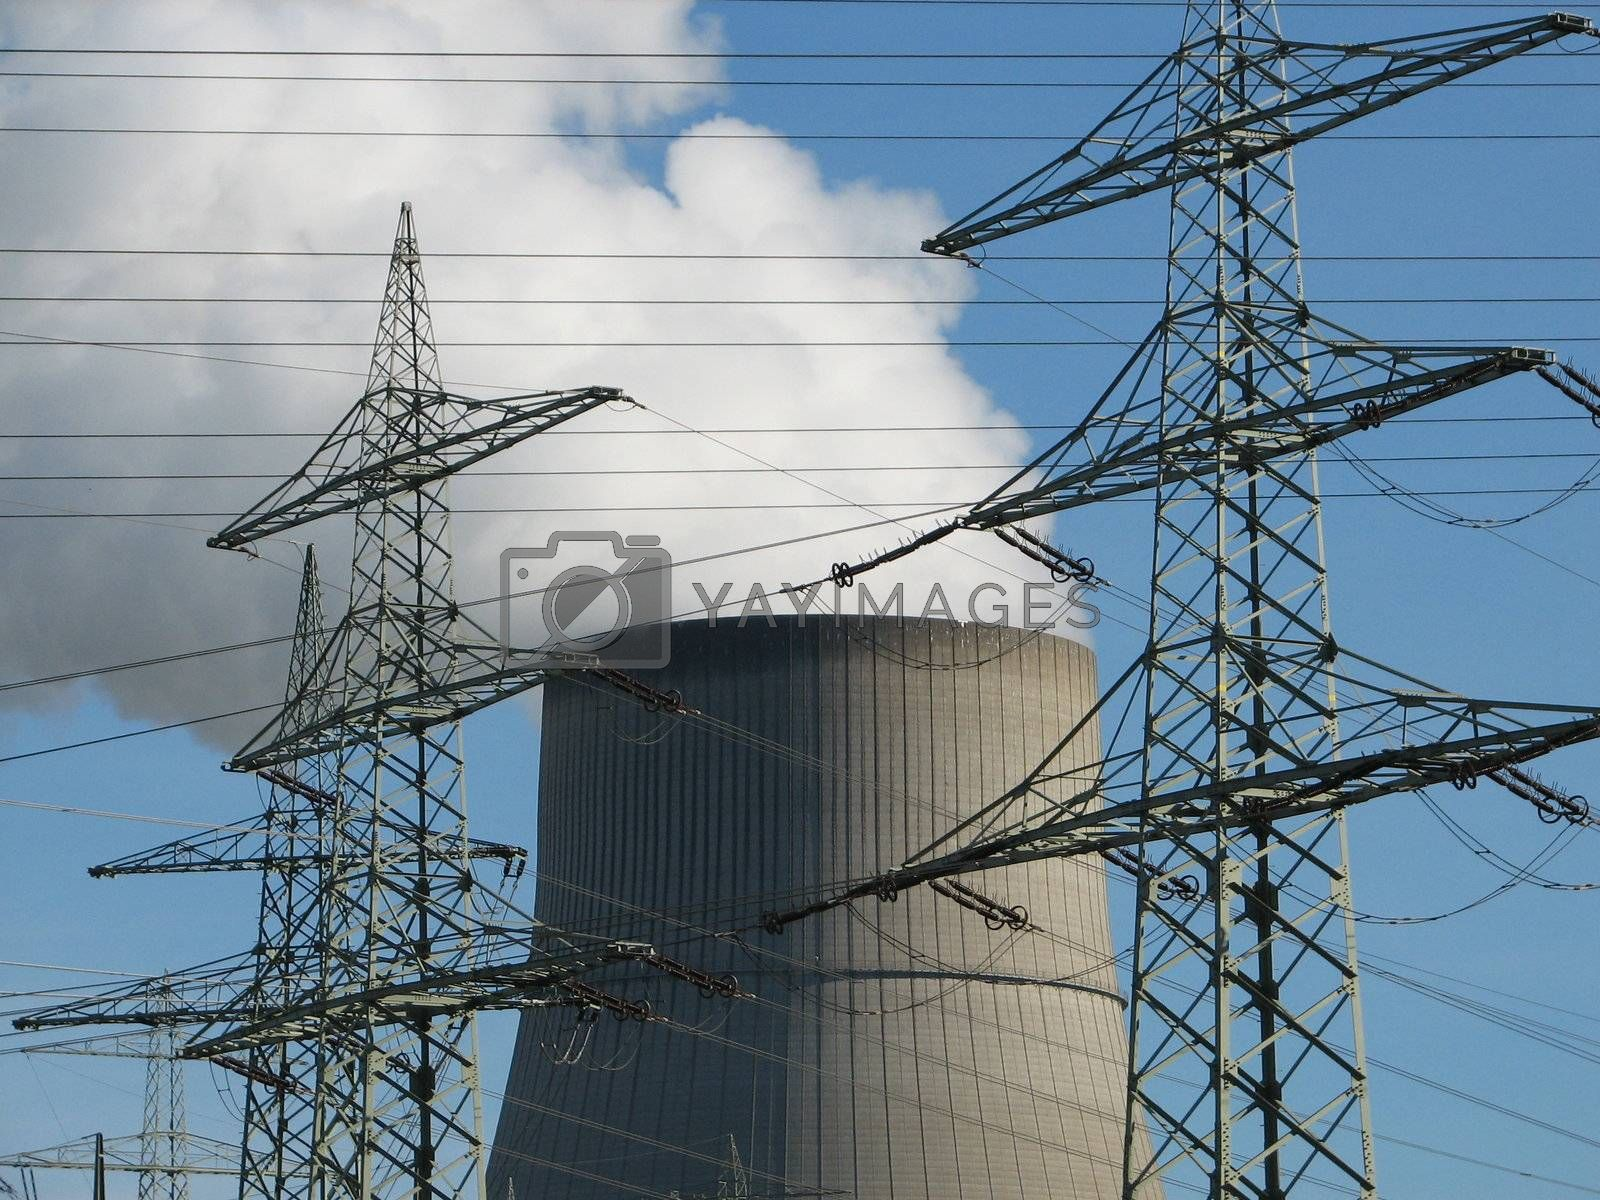 power supply lines with cooling chimney, Emsland, Germany, 2008